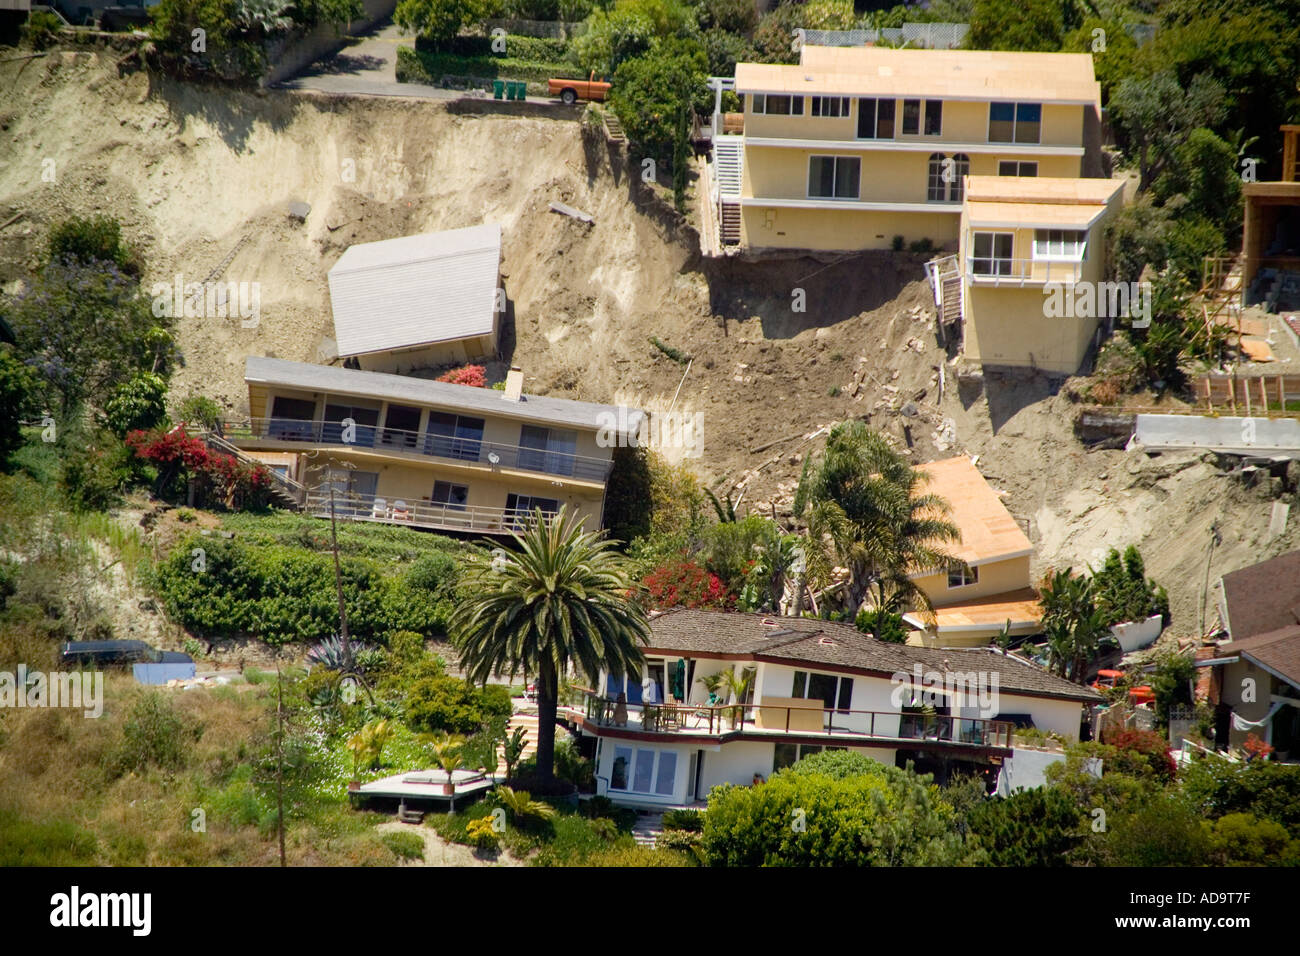 Homes damaged by a landslide in bluebird canyon laguna for Houses in laguna beach